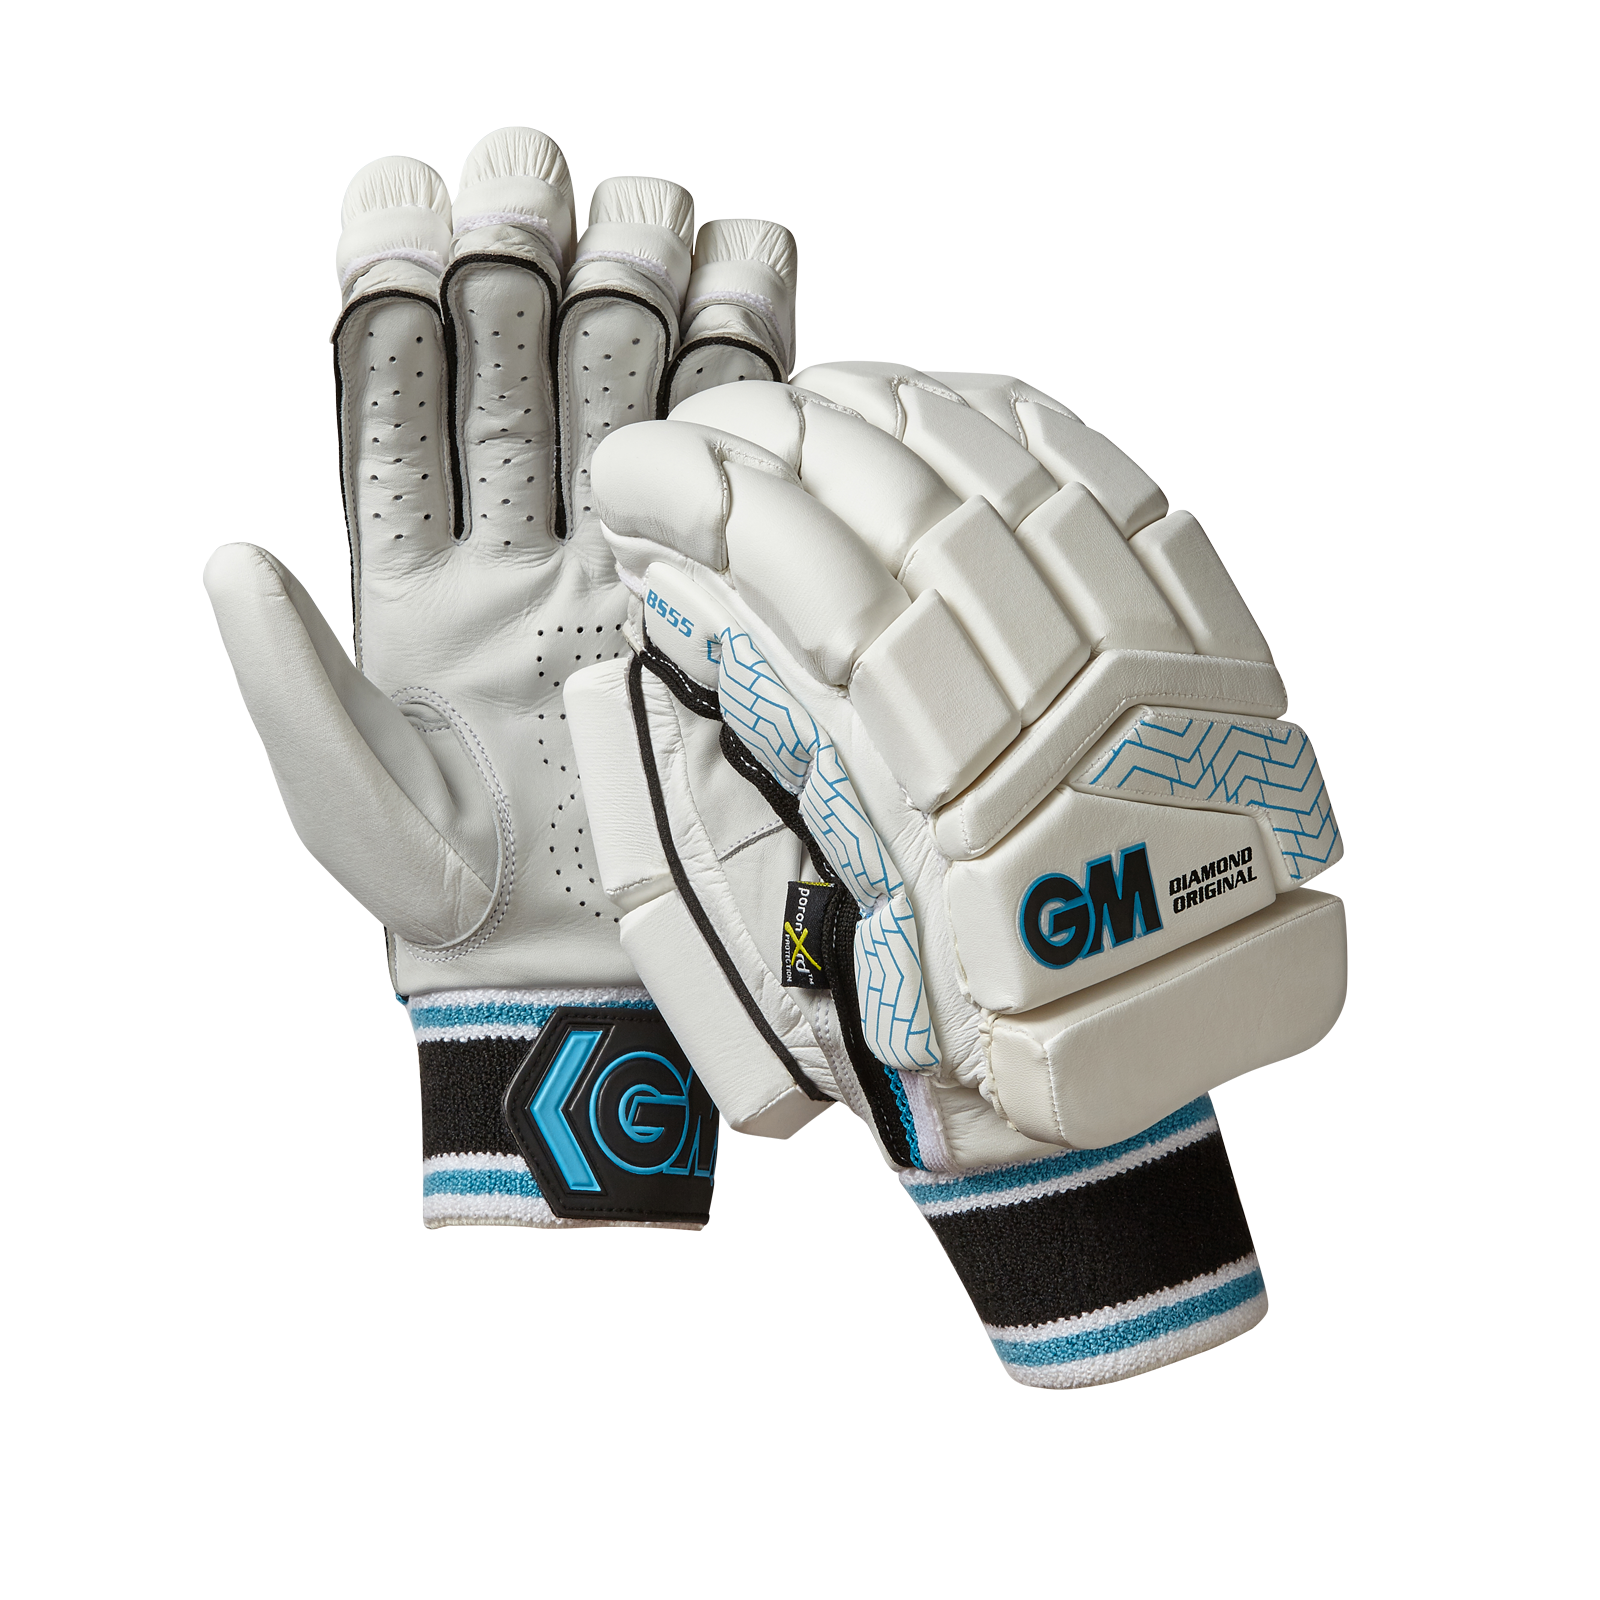 2021 Gunn and Moore Diamond Original Batting Gloves